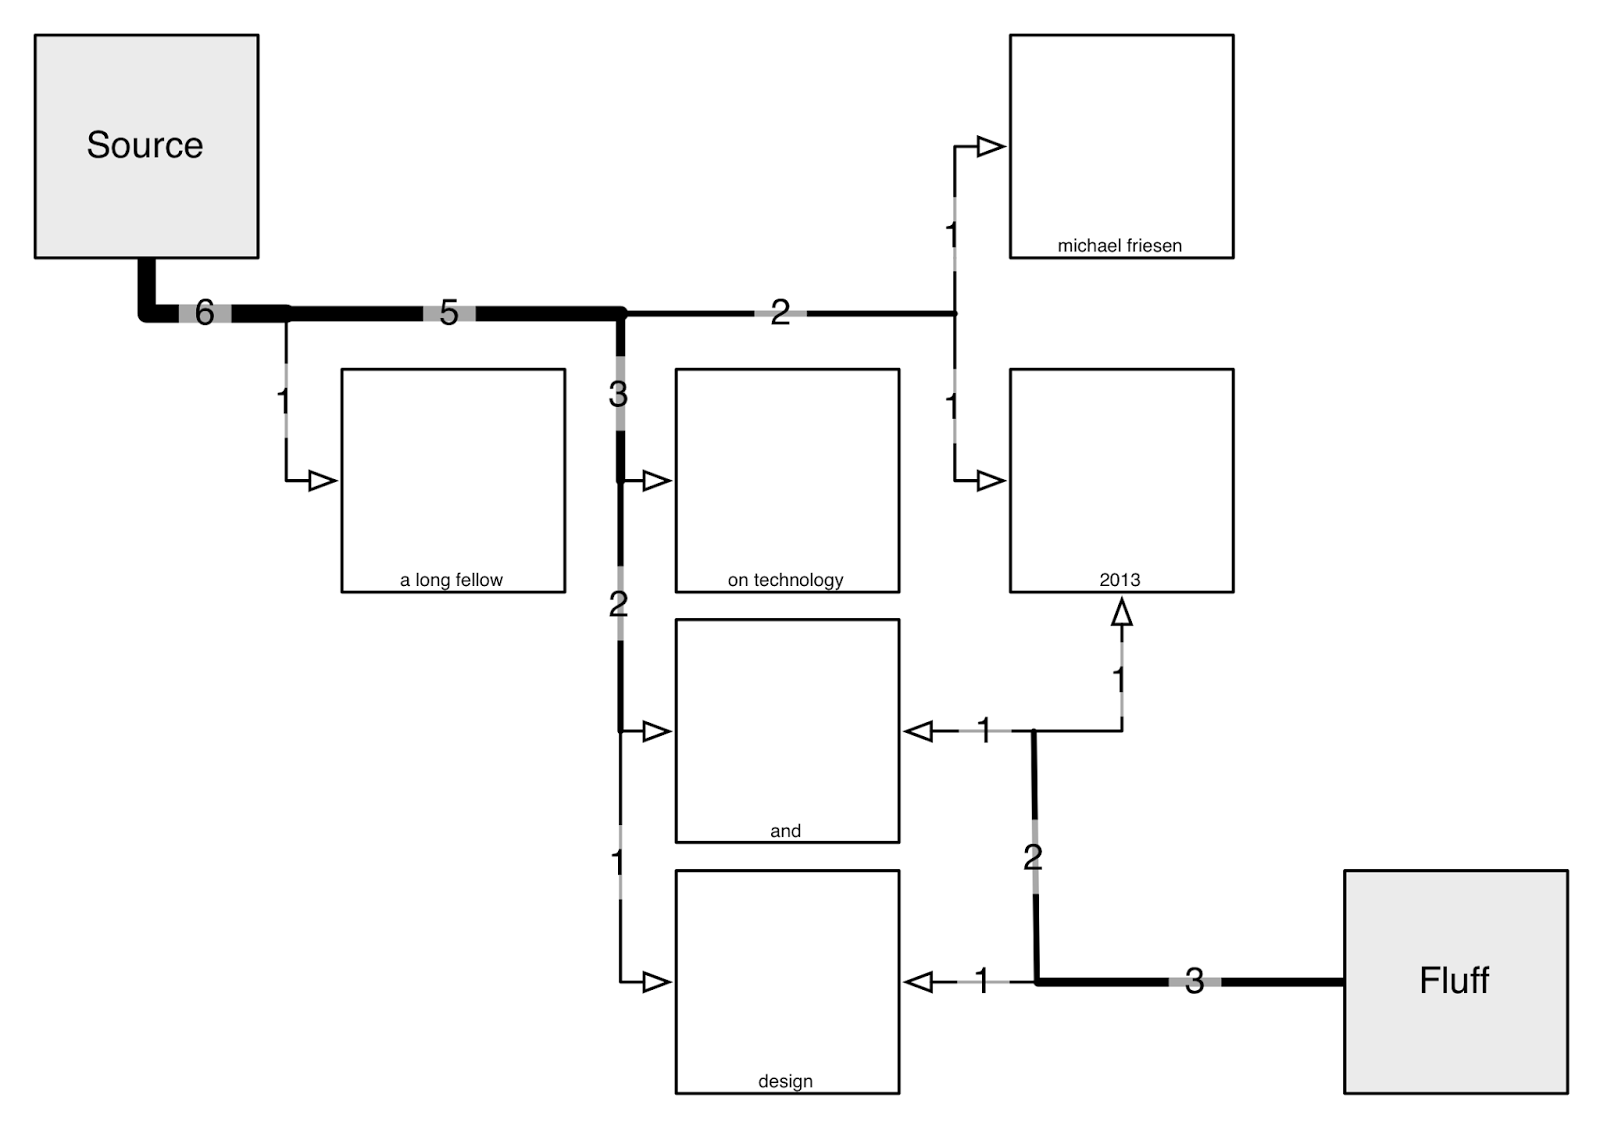 Pmp Process Flow Diagram A Long Fellow On Tech And Design Idctheremin Schematic Note My Editor Notes That It Might Be Inherently Useful To Have The Number Of Connections Numbers Automatically Present So Viewer Can See How